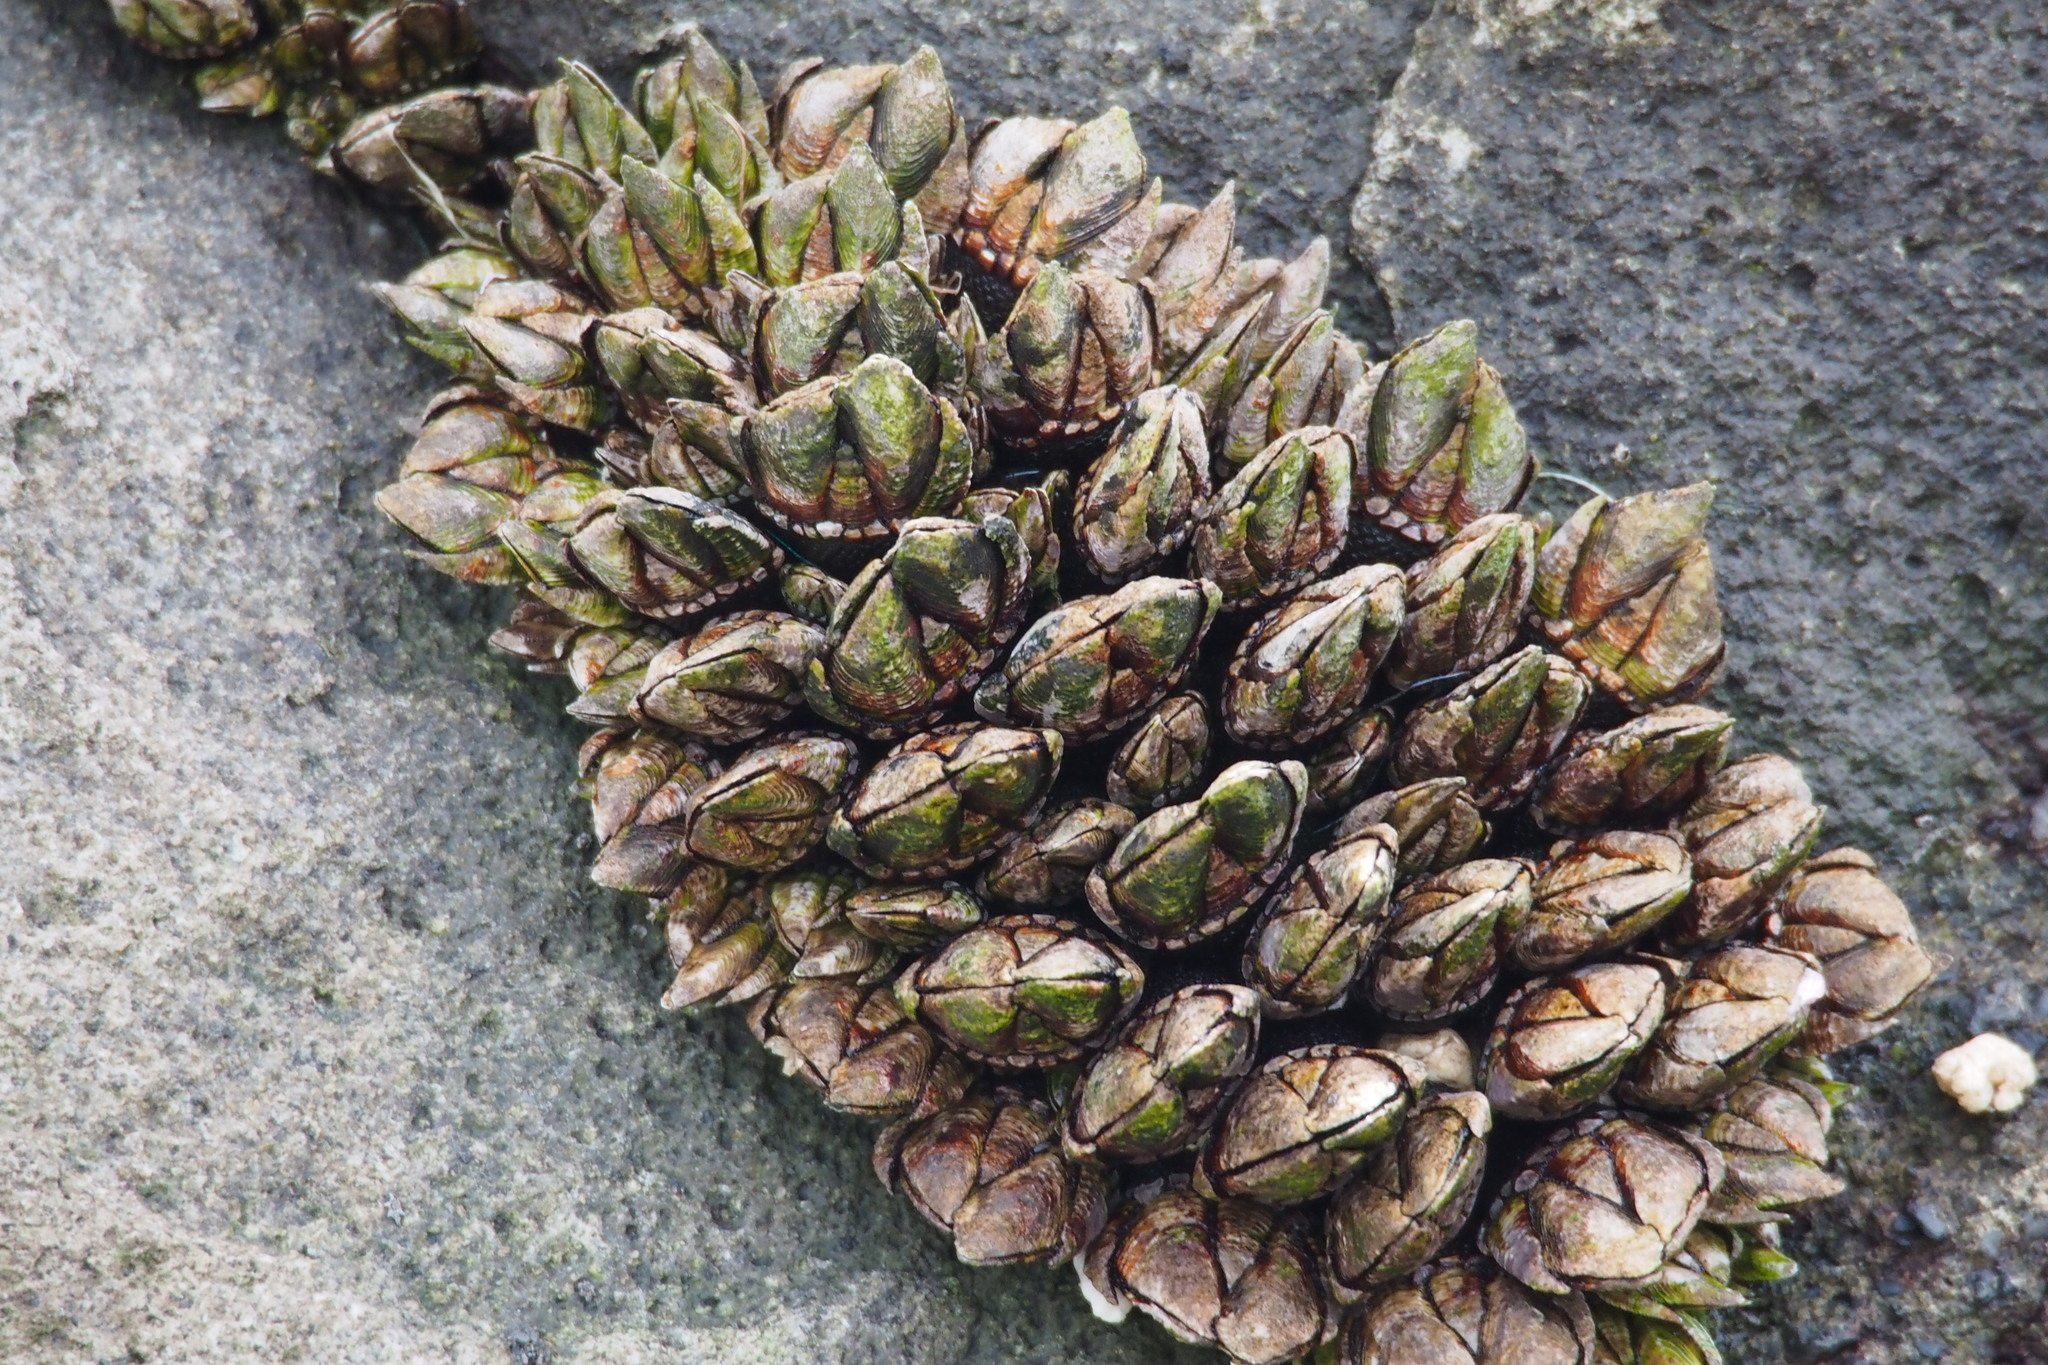 Image of Japanese goose barnacle